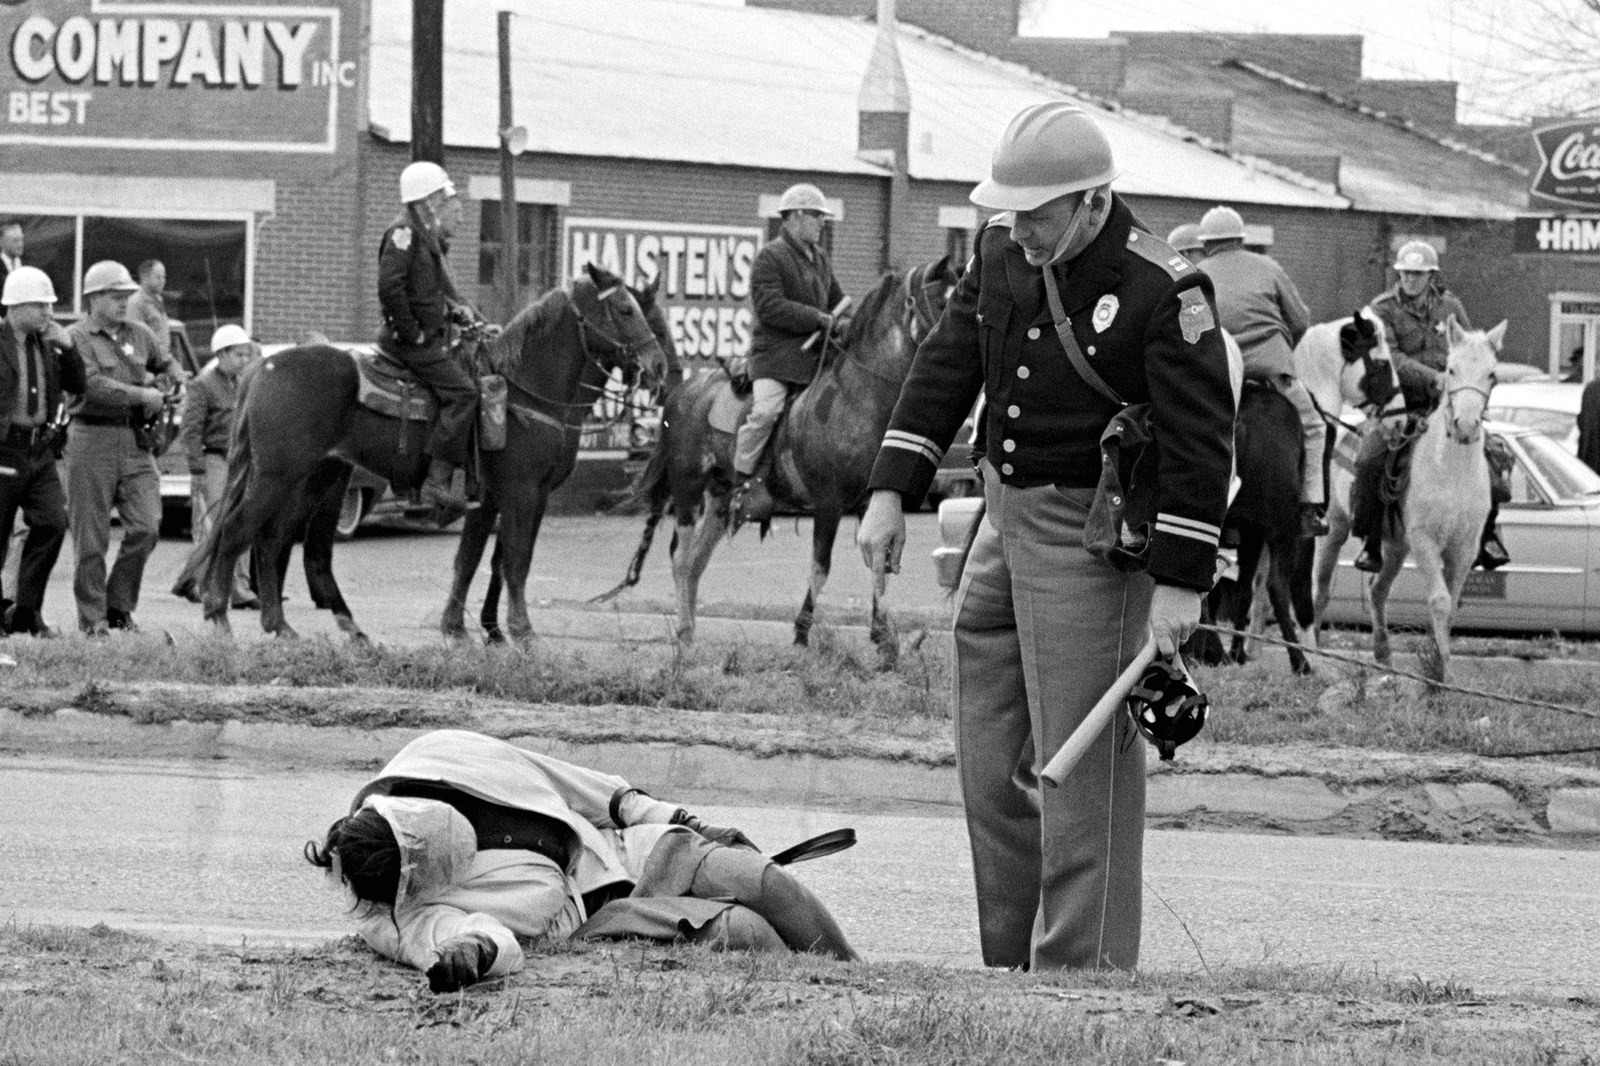 Police Officer aggressively standing over a fallen protester in Selma